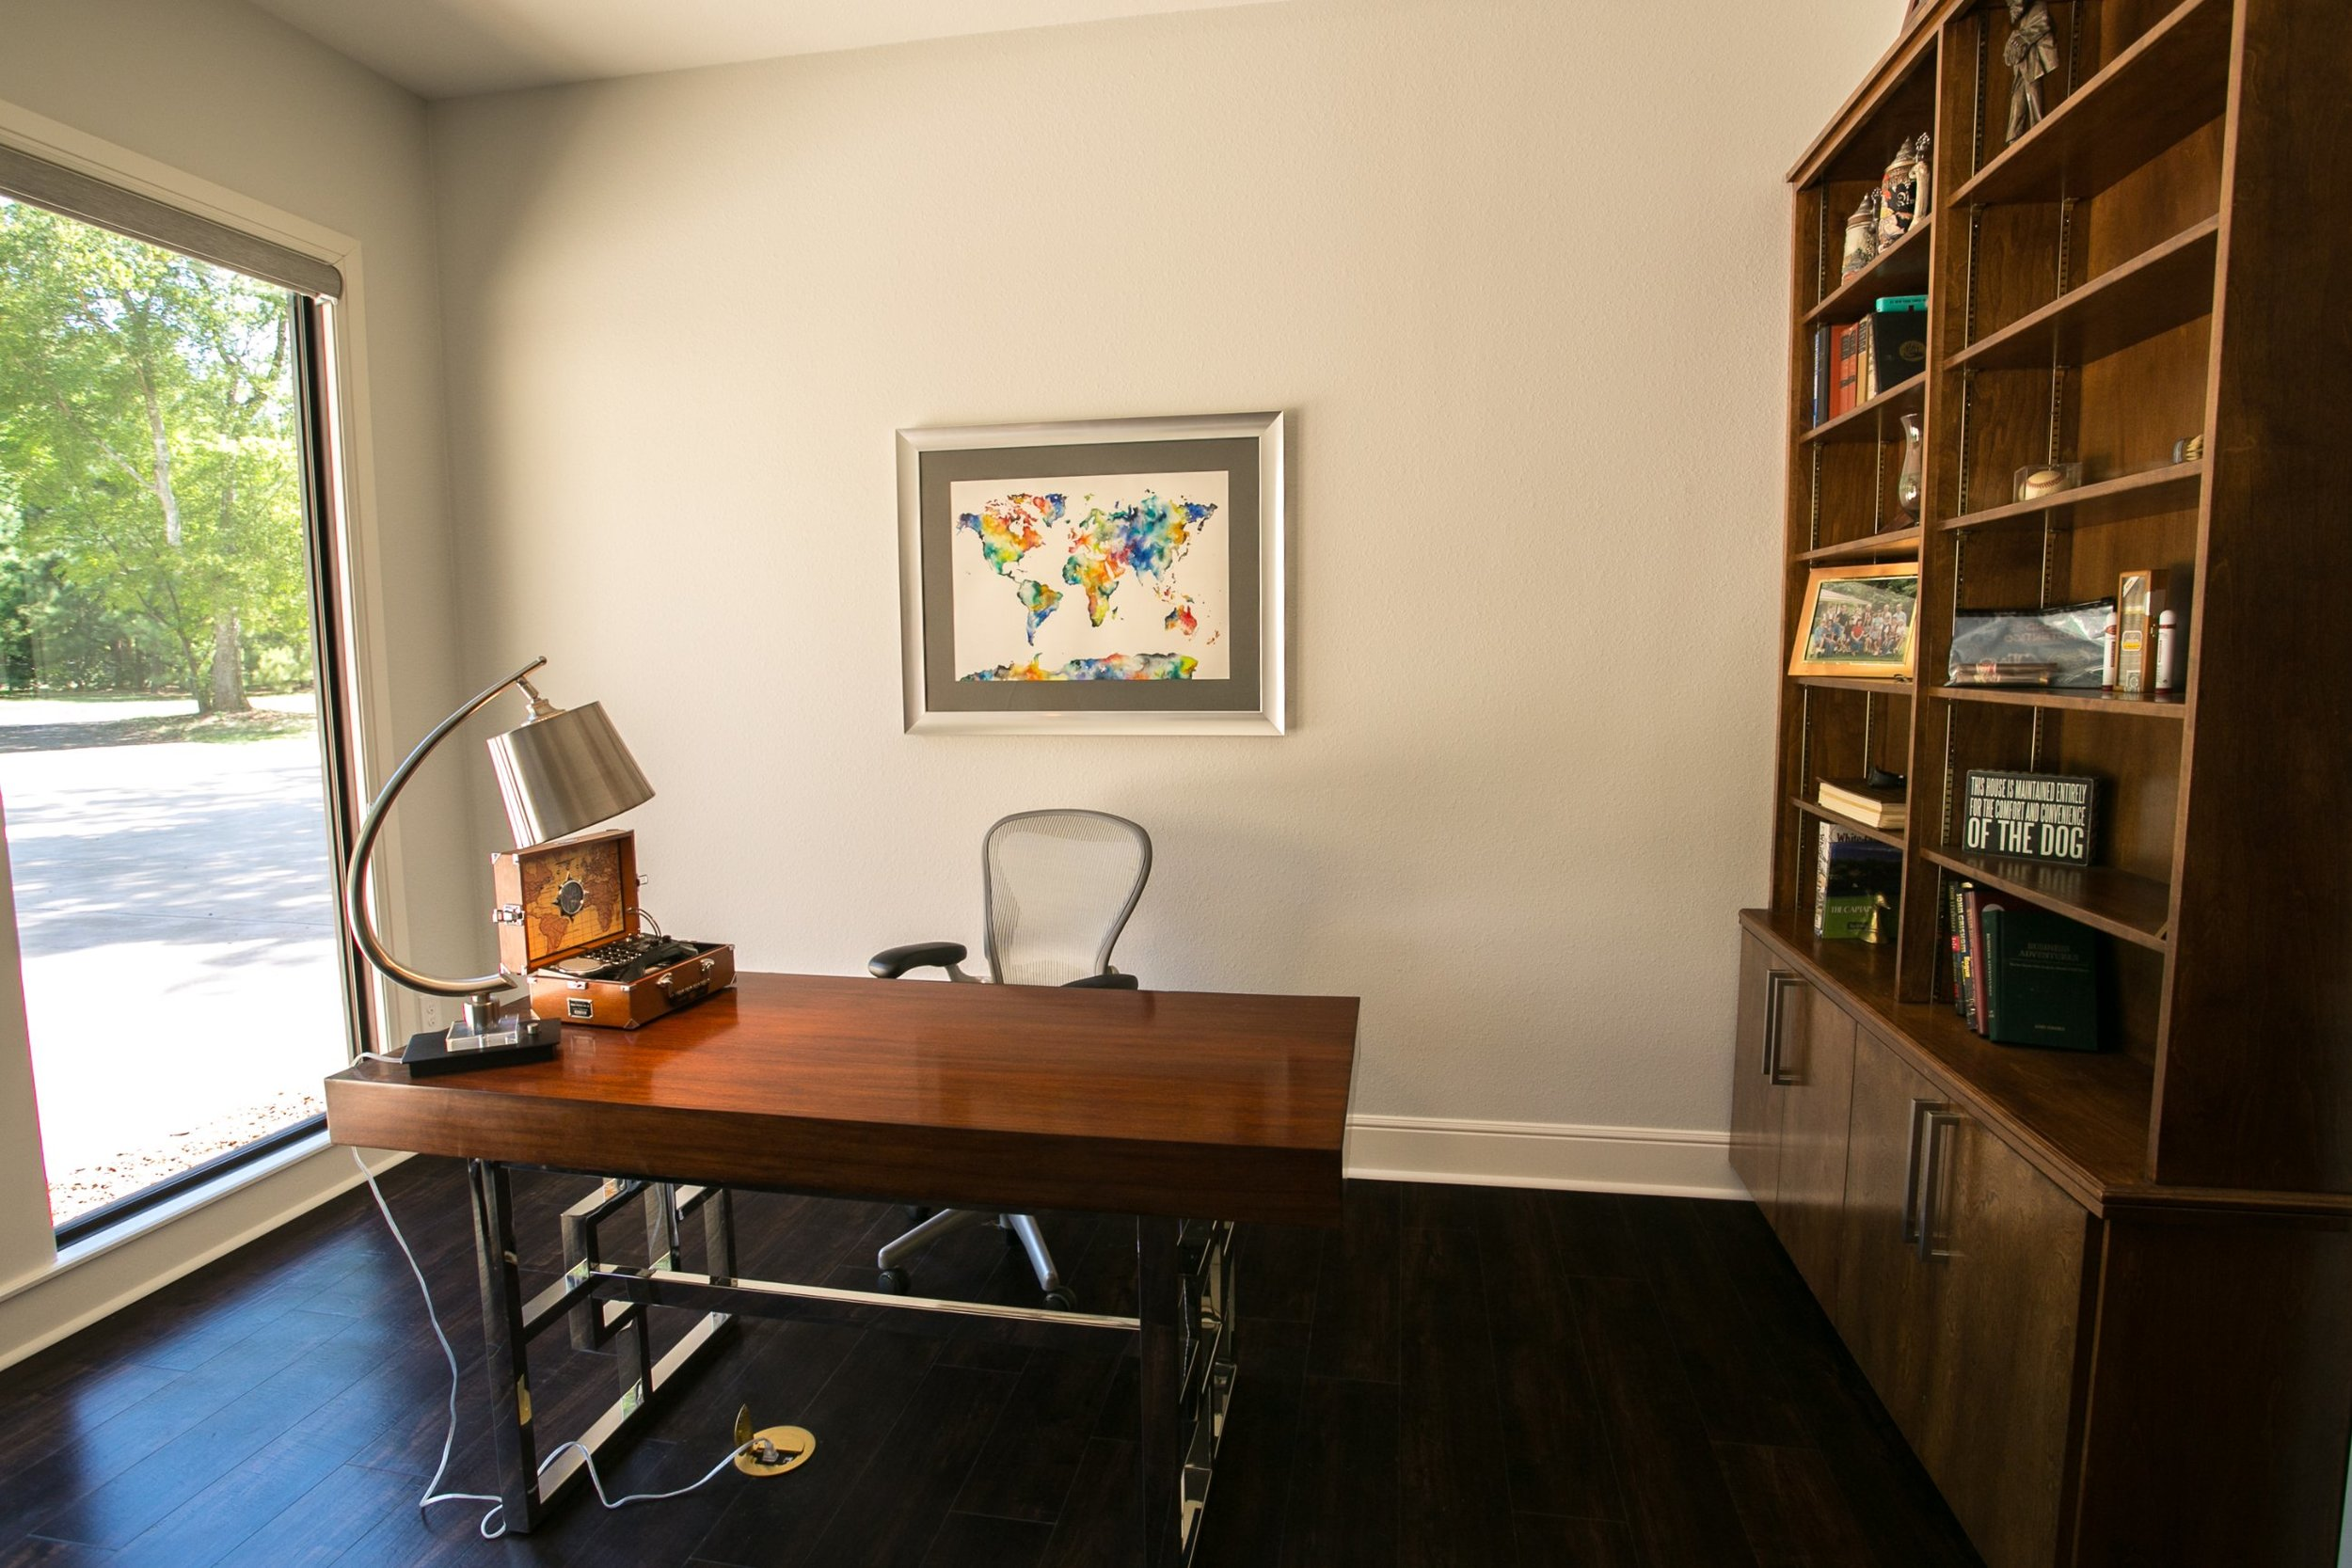 Home Office with storage - Jill Ornelas - Ambiance